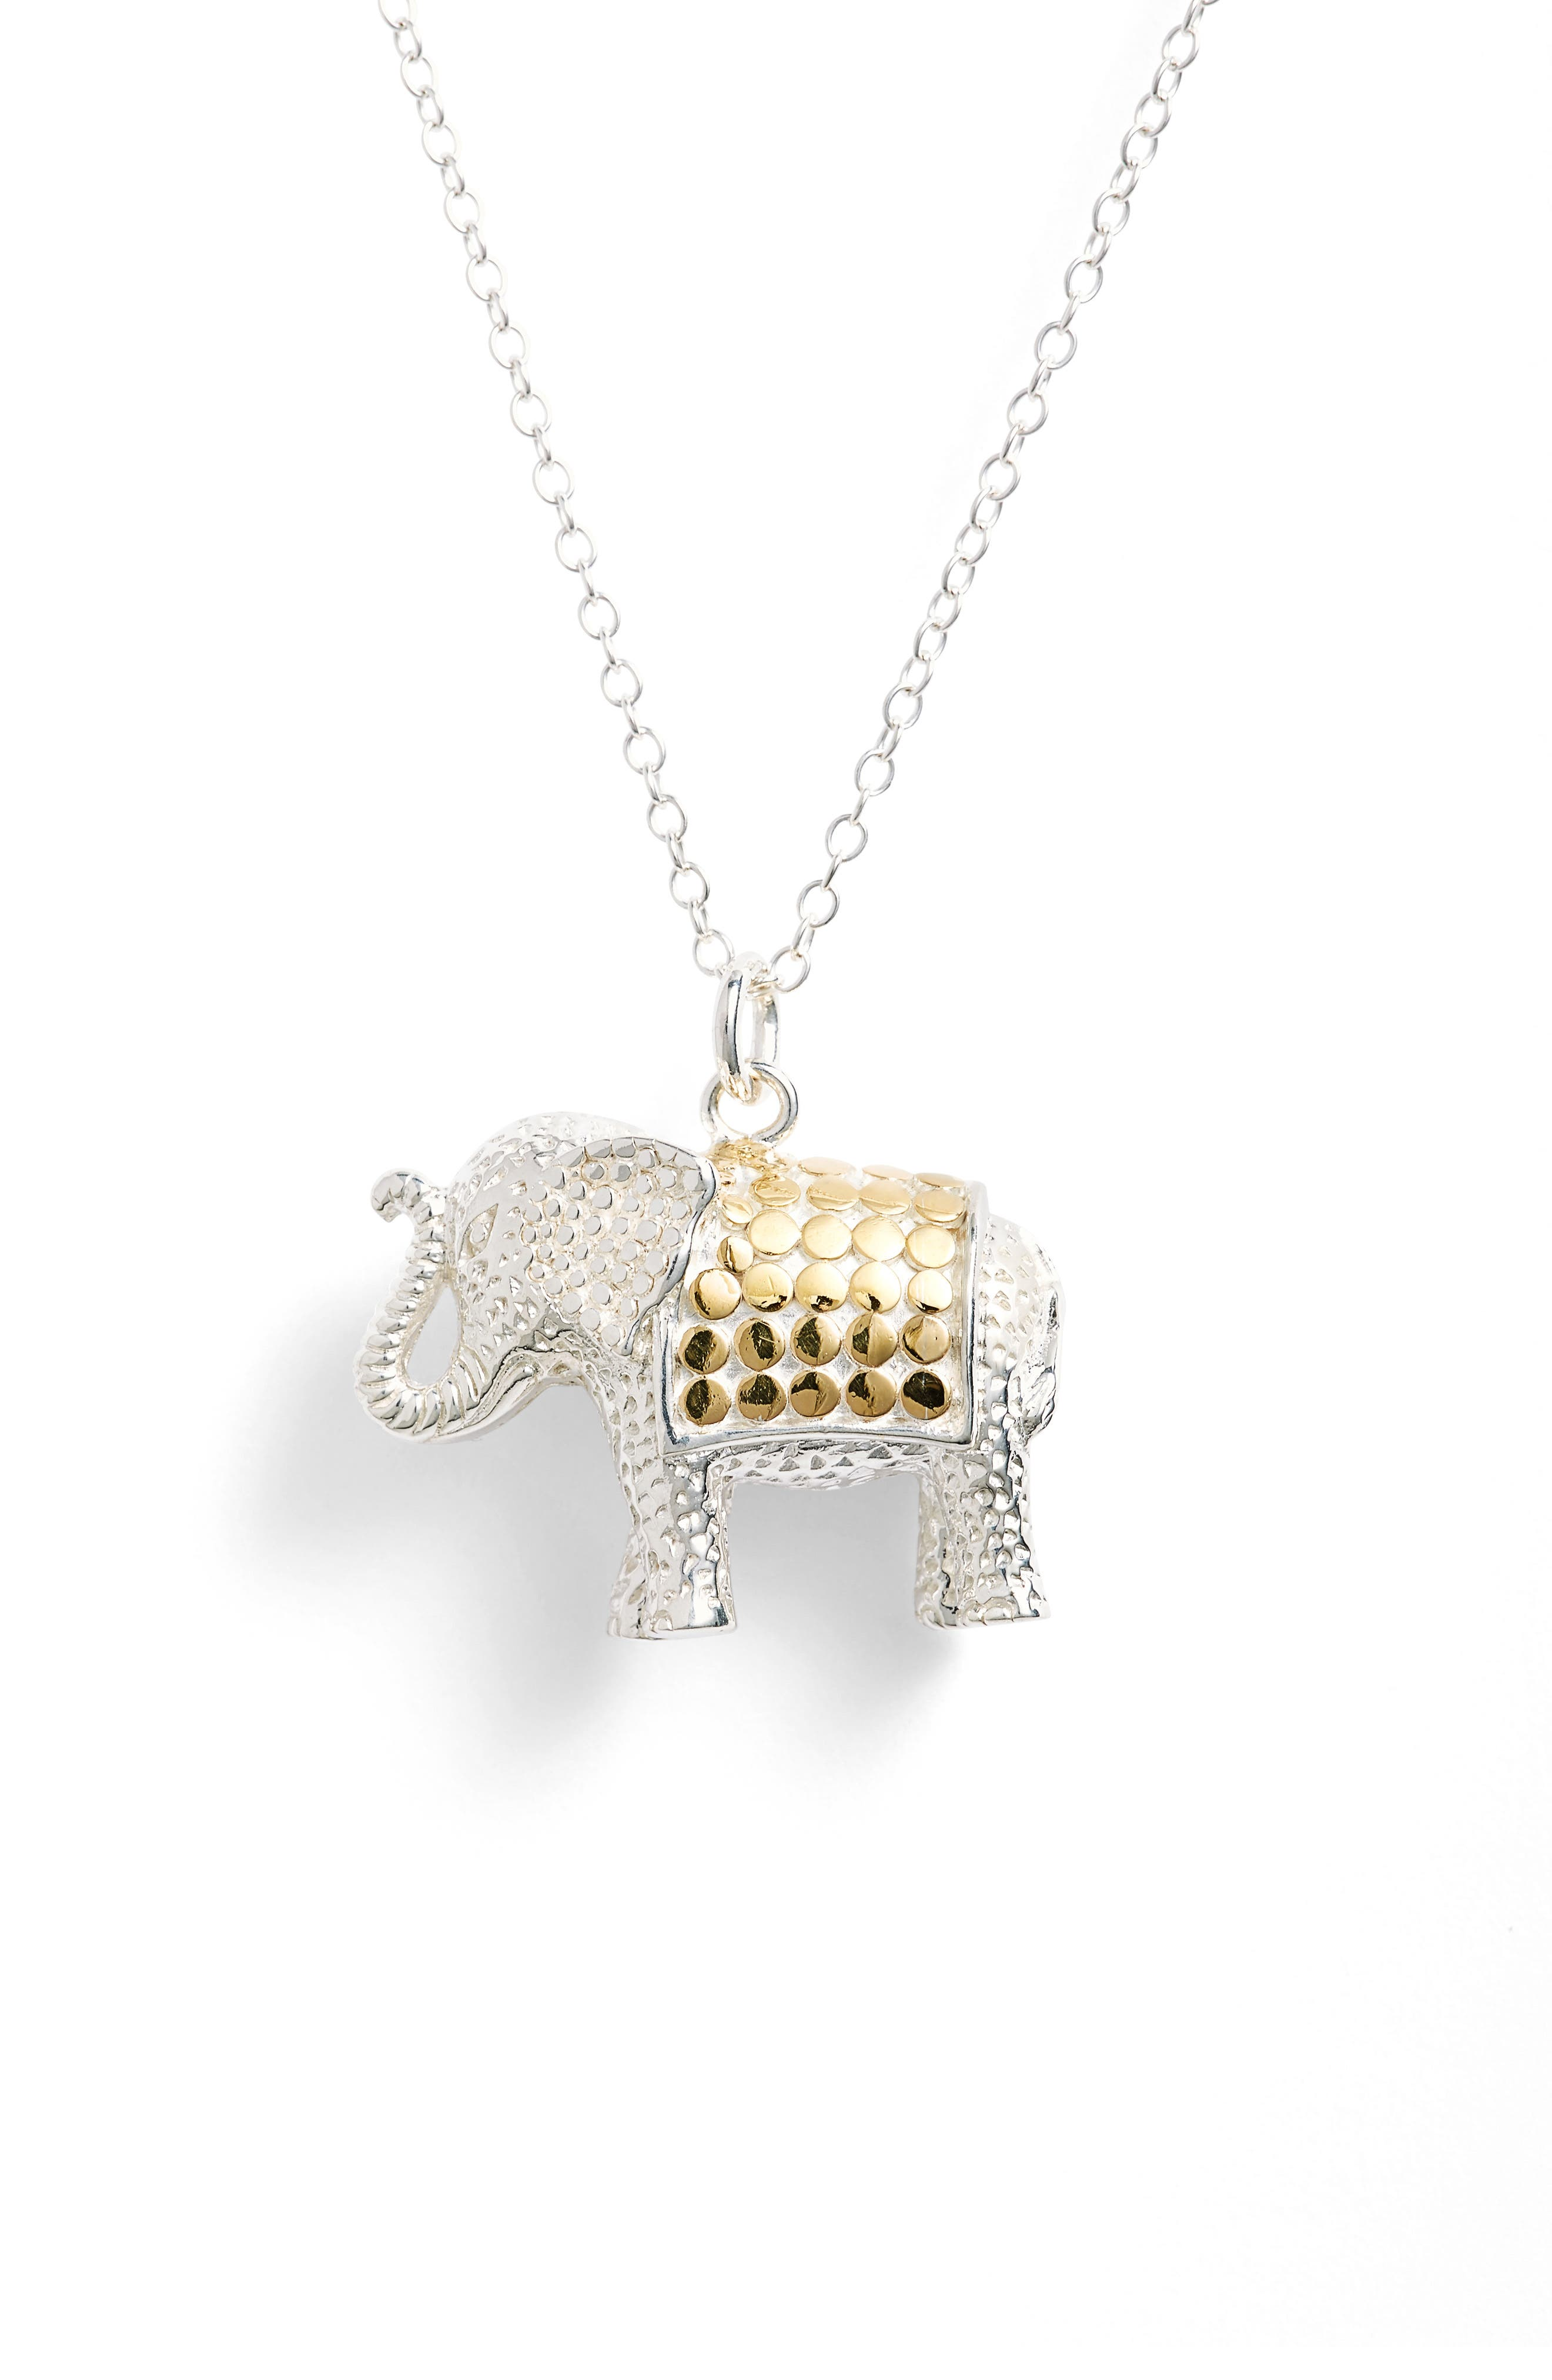 Main Image - Anna Beck Jewelry That Makes a Difference Elephant Pendant Necklace